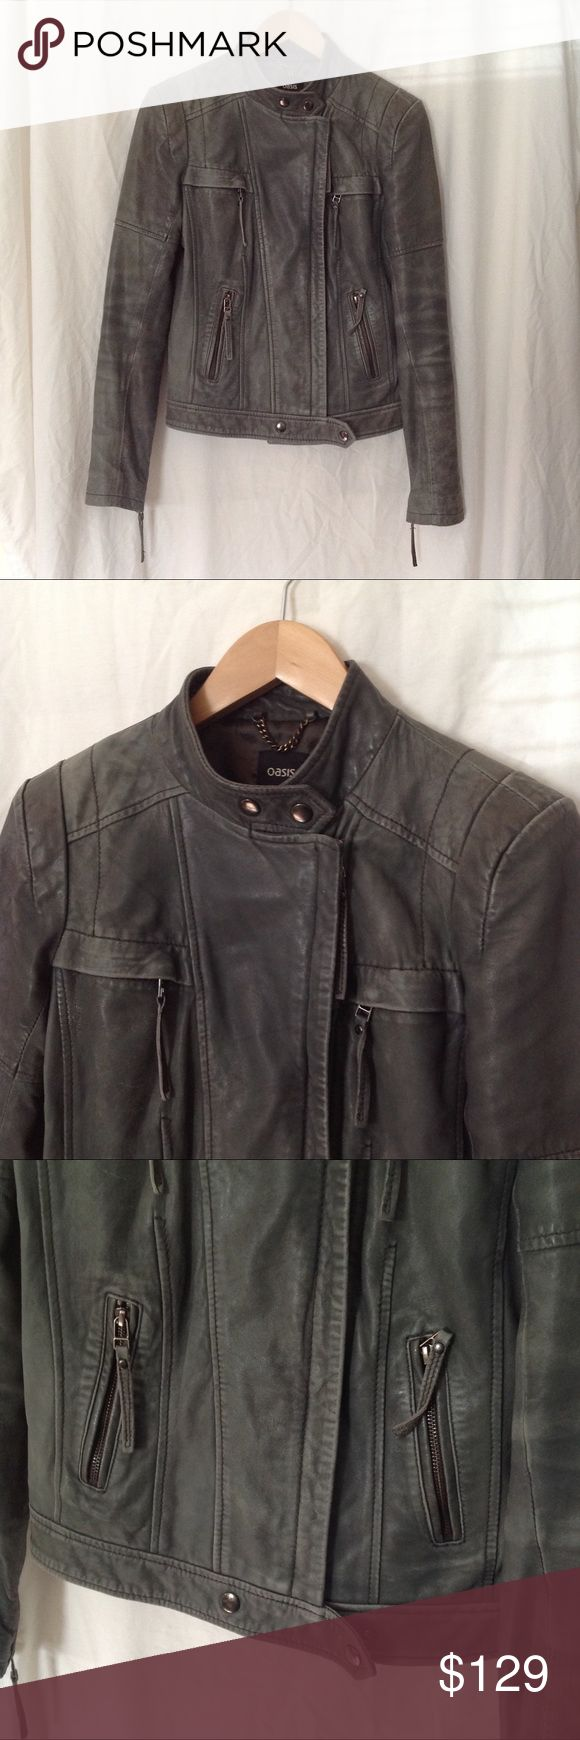 Oasis Gray Distressed Leather Jacket Gray distressed moto leather jacket by Oasis. Gently used. Size small. Oasis Jackets & Coats